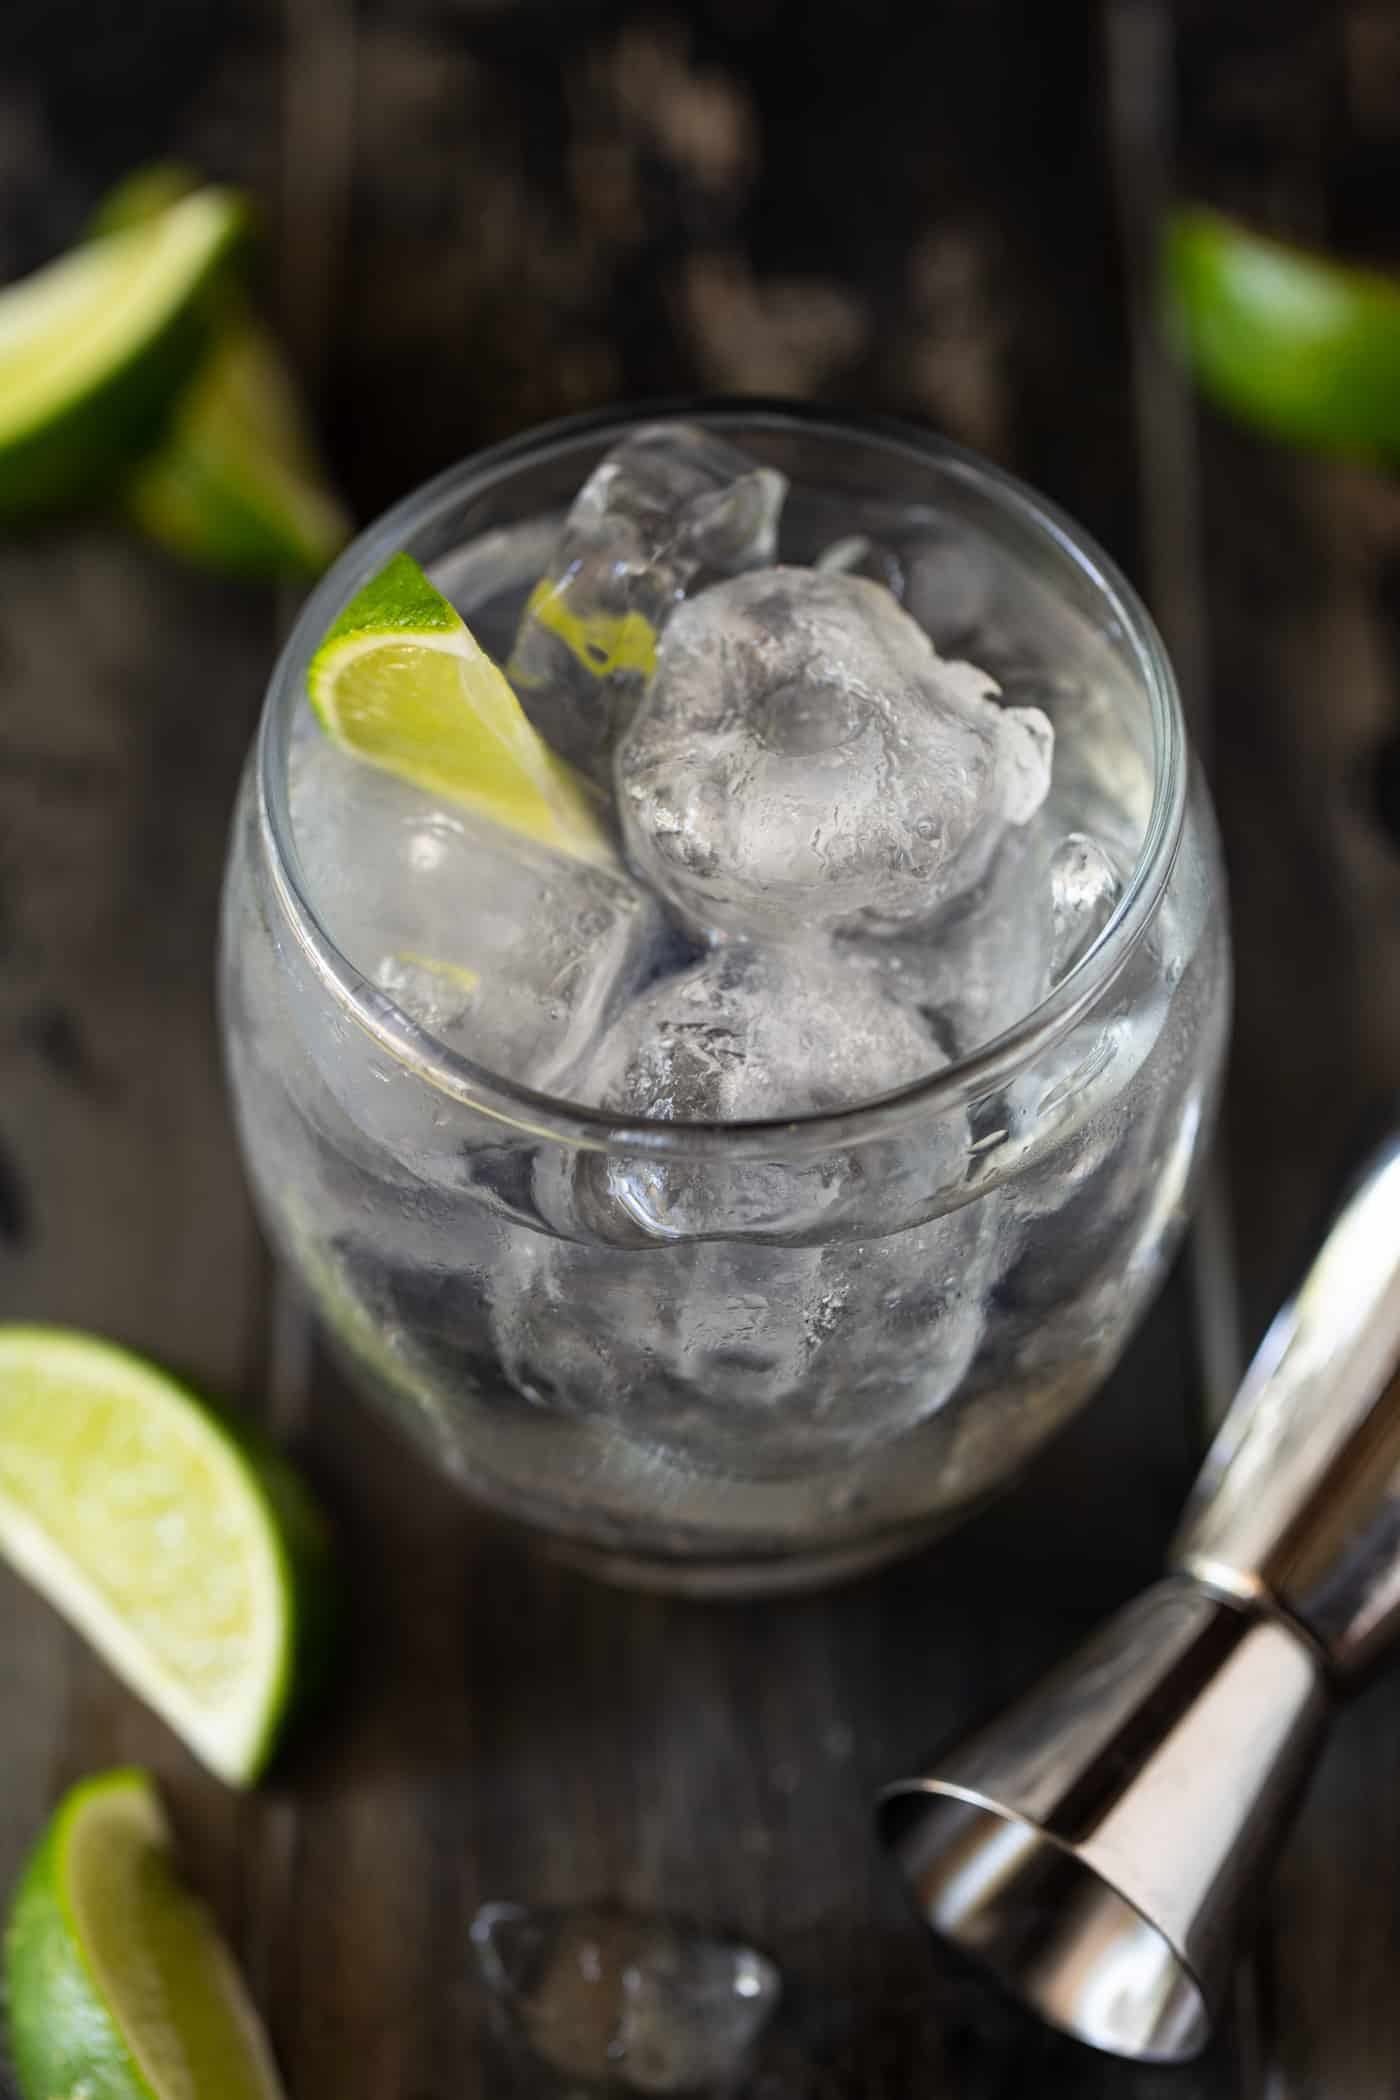 Lowball glass filled with ice, gin, elderflower liqueur and tonic water. Garnished with fresh lime wedges.